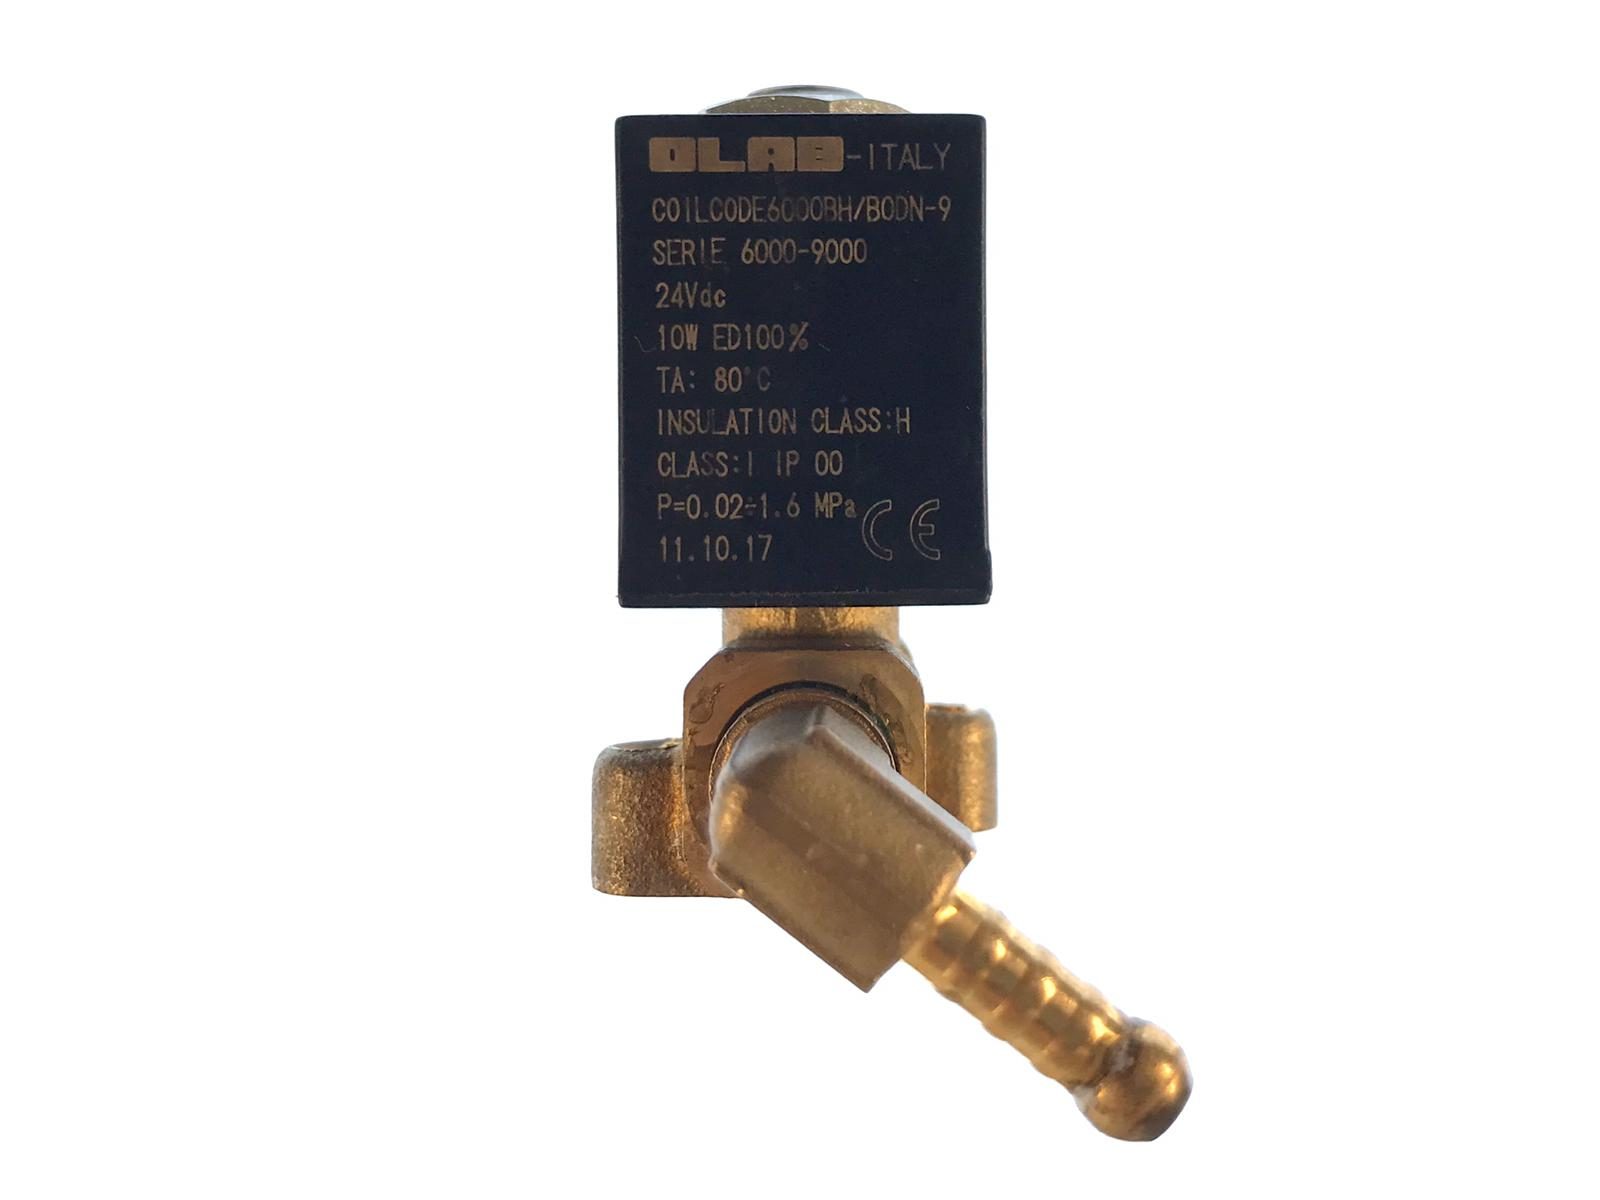 Electro Valve For Philips Saeco Incanto Deluxe HD8921 6000BH-BODN-9